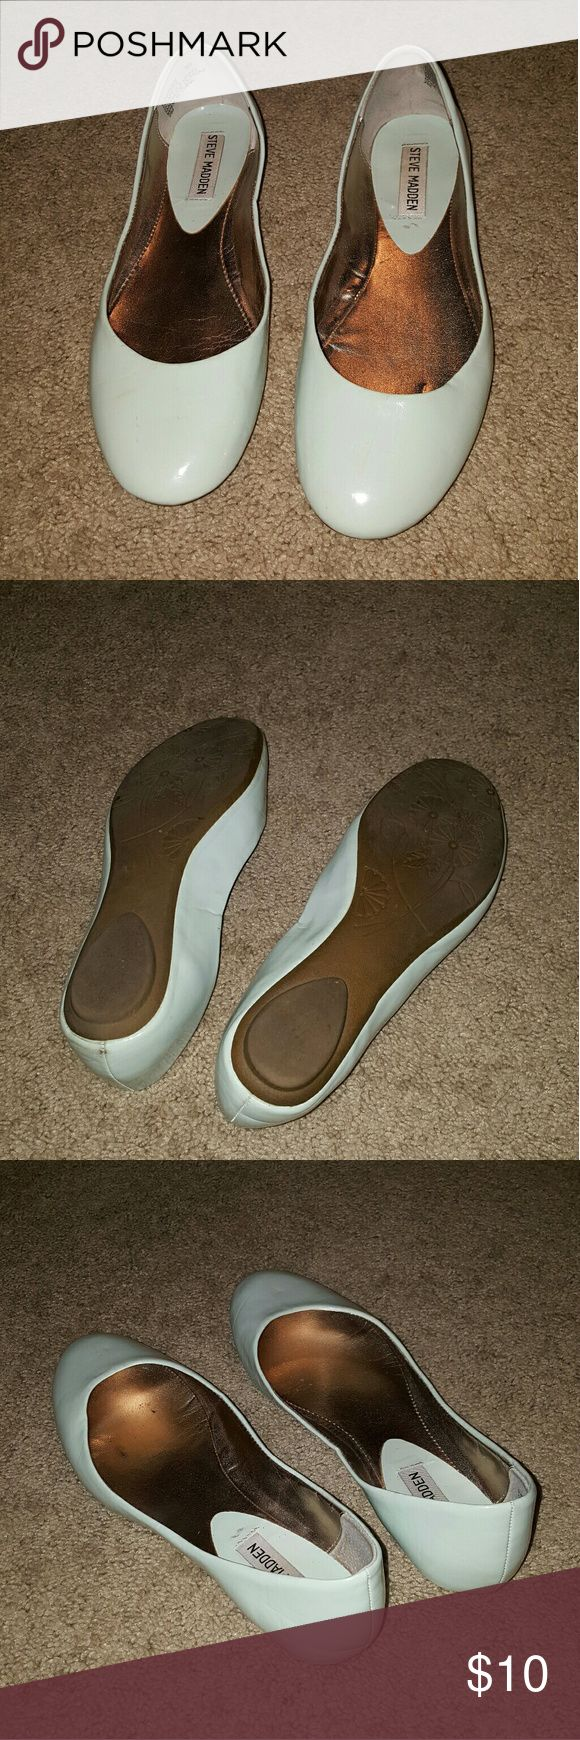 Steve Madden Flats size 8 light blue Steve Madden Flats size 8. used some signs of wear on the sole. Steve Madden Shoes Flats & Loafers